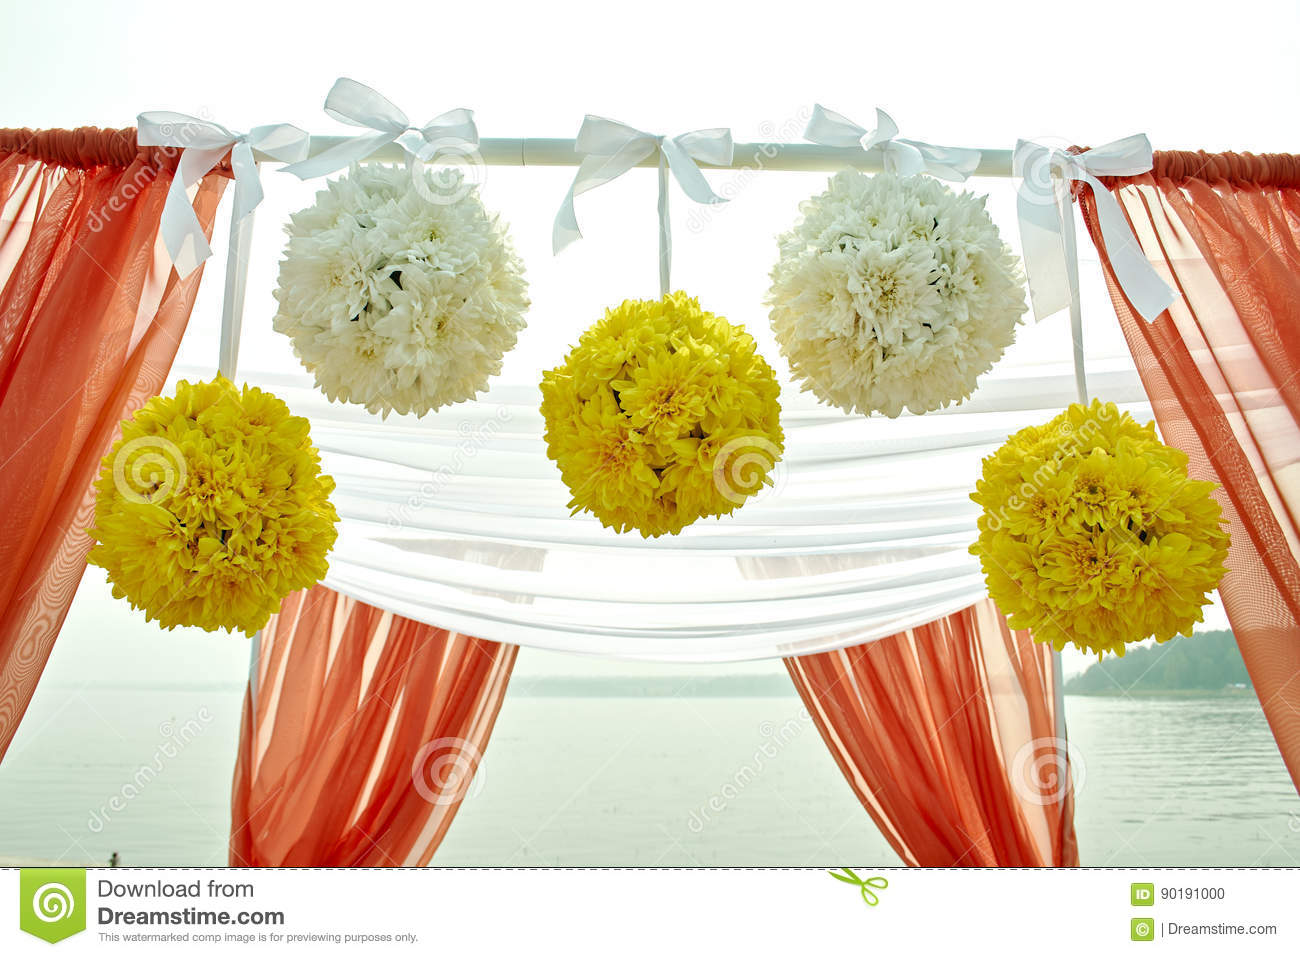 Wedding Decor Flowers In Coral Style Stock Photo - Image of holiday ...